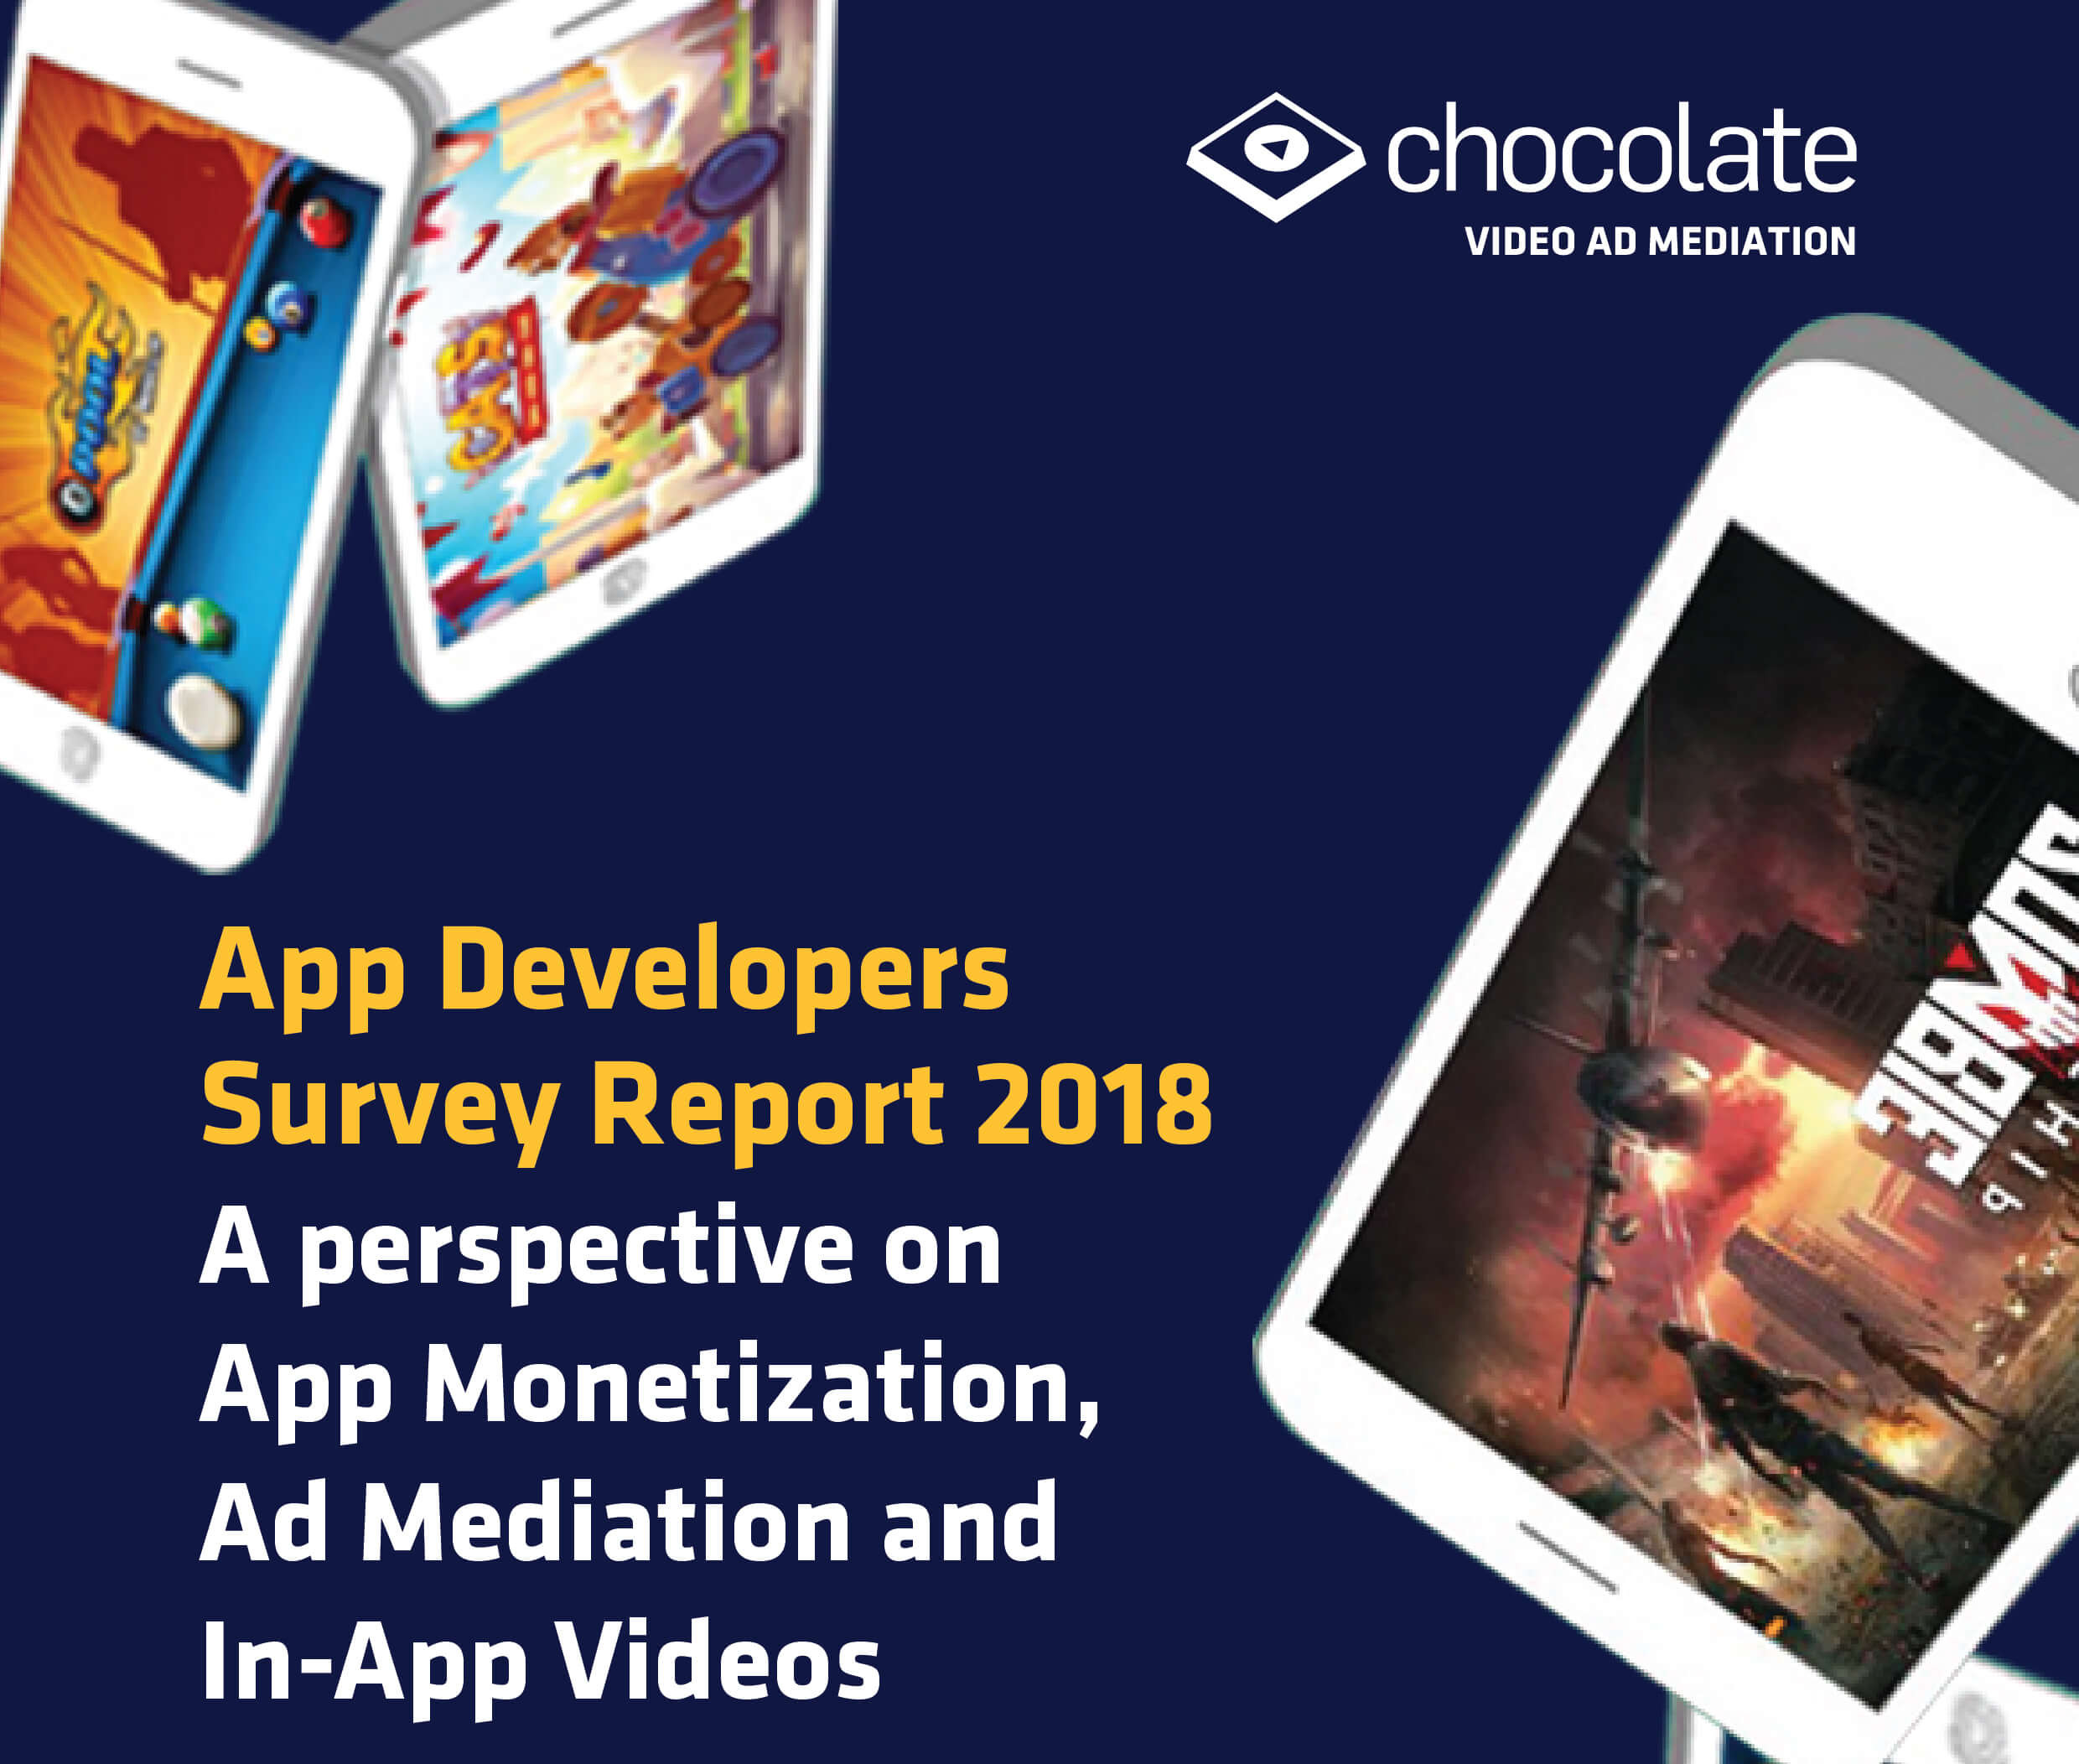 App Developers Survey Report 2018